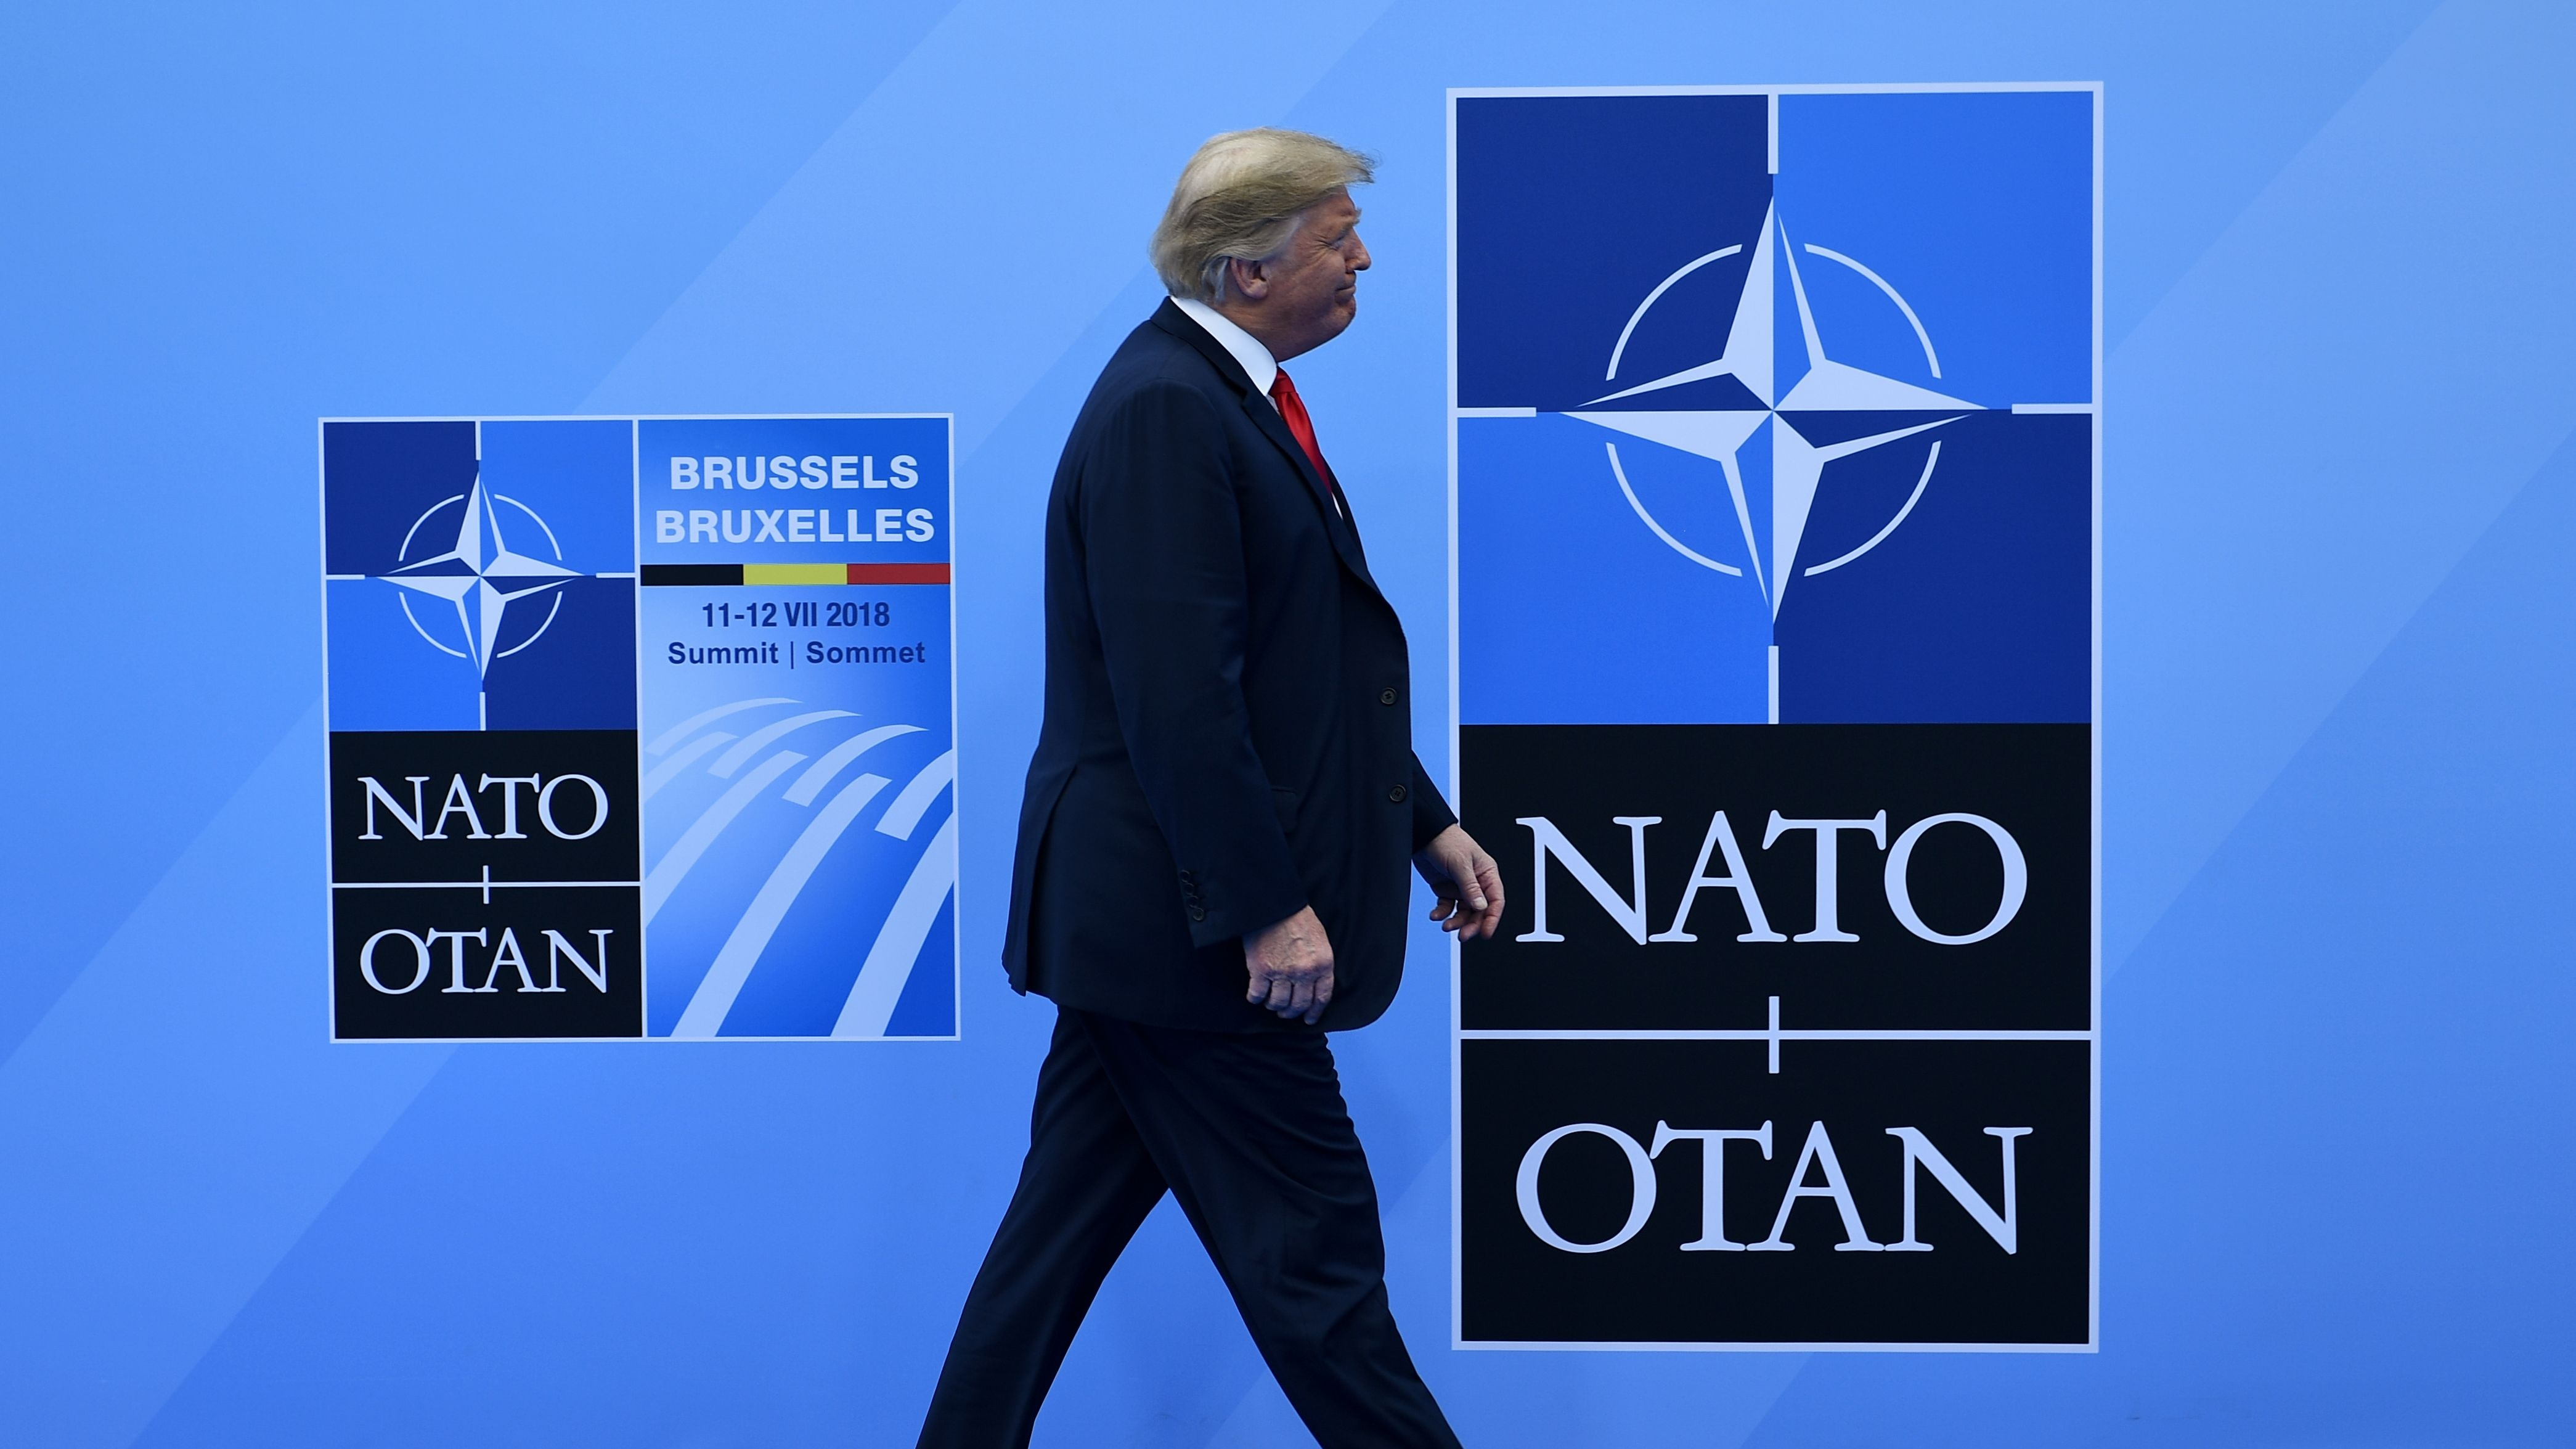 The Senate Armed Services Committee has made moves to make sure U.S. President Donald Trump doesn't abandon the NATO alliance. (BRENDAN SMIALOWSKI/AFP/Getty Images)